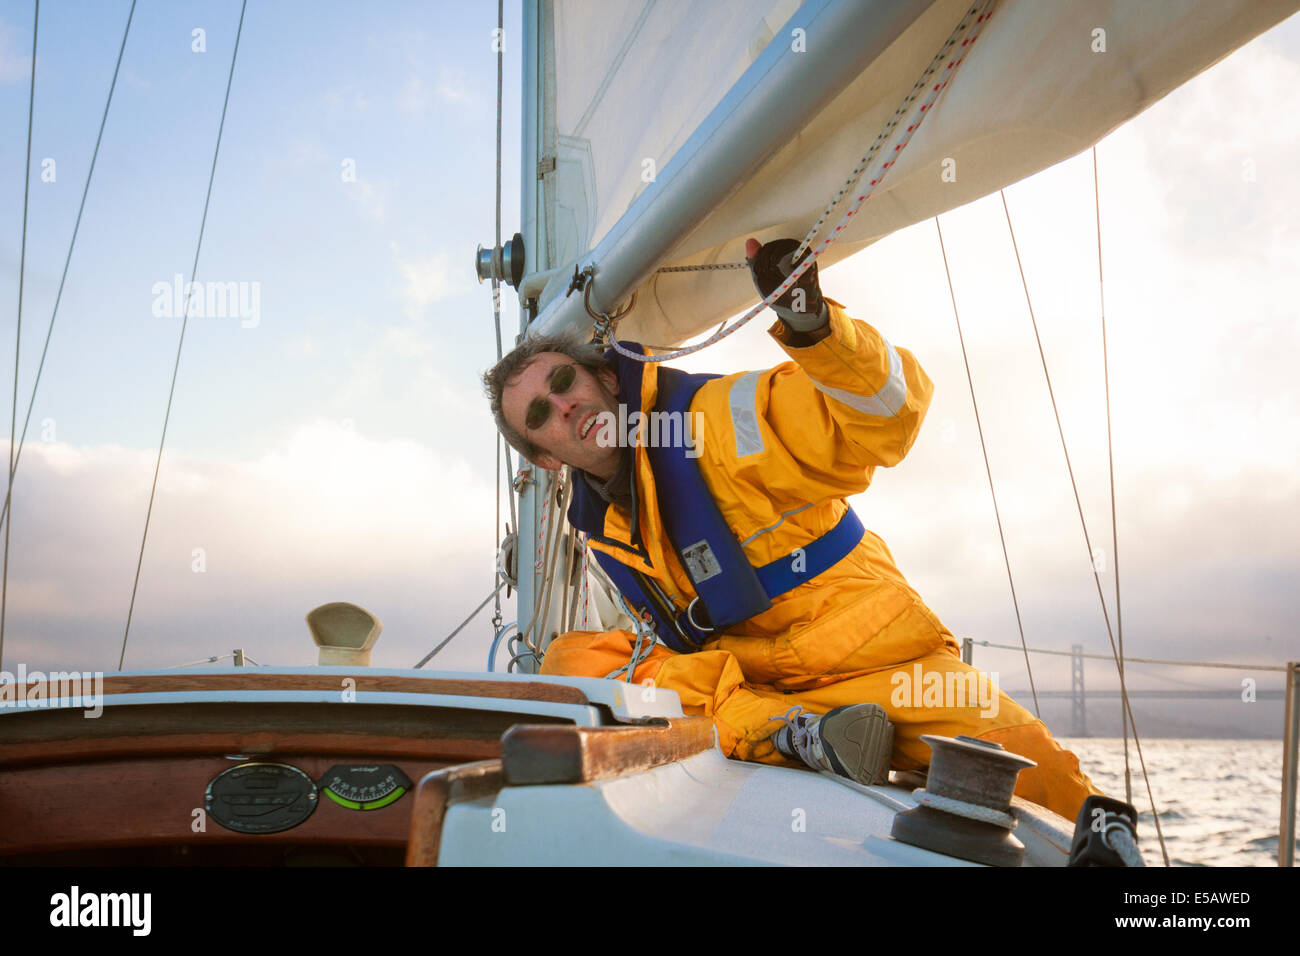 Sailor in yellow foul weather gear checking the lines of the mainsail as he heads into cloudy weather in his sailboat - Stock Image